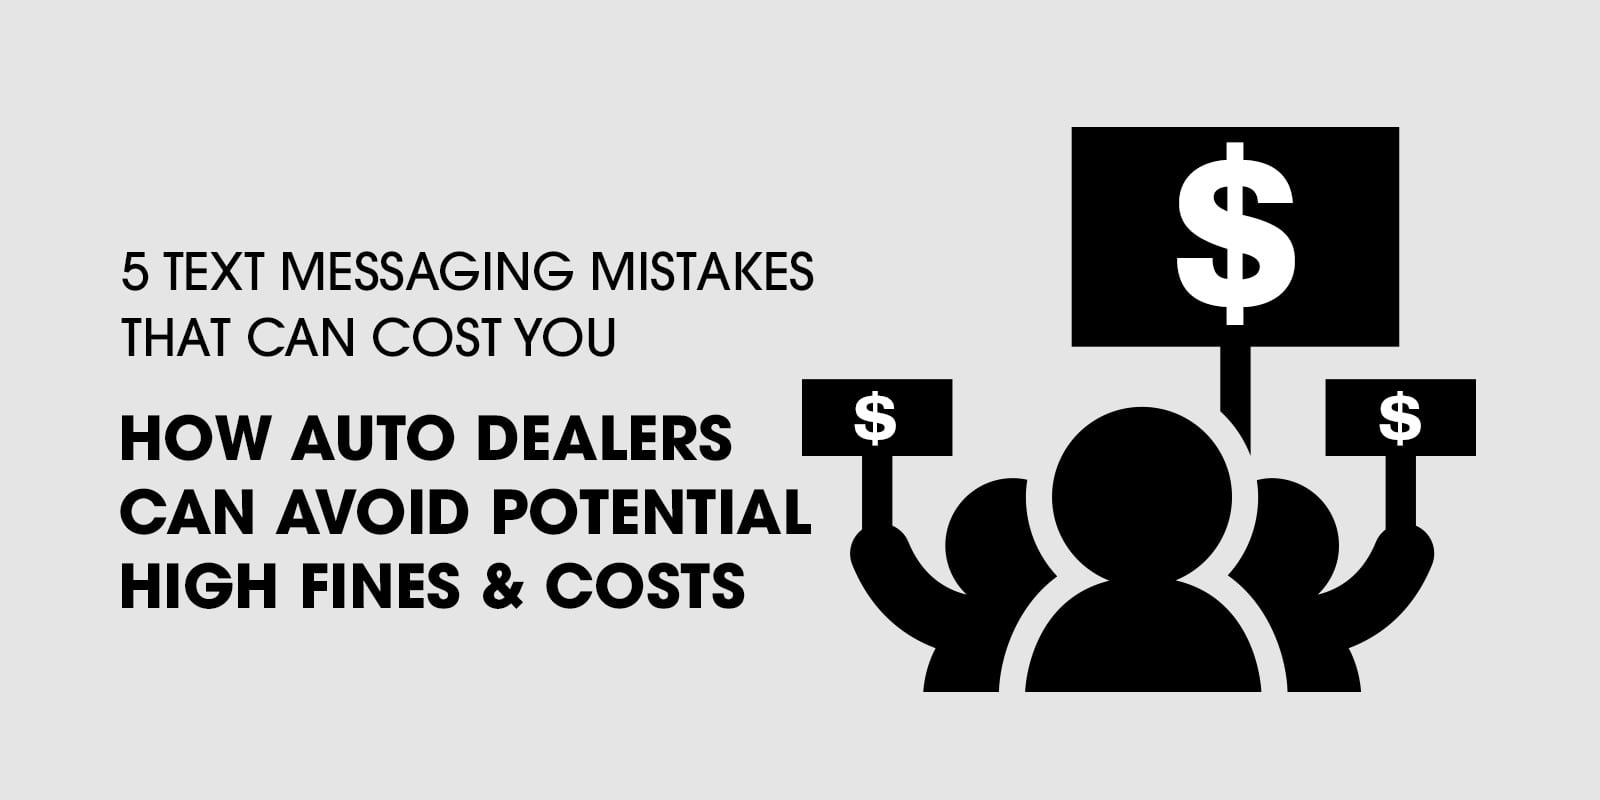 how-auto-dealers-can-avoid-fines-lawsuits-when-text-marketing-consumers